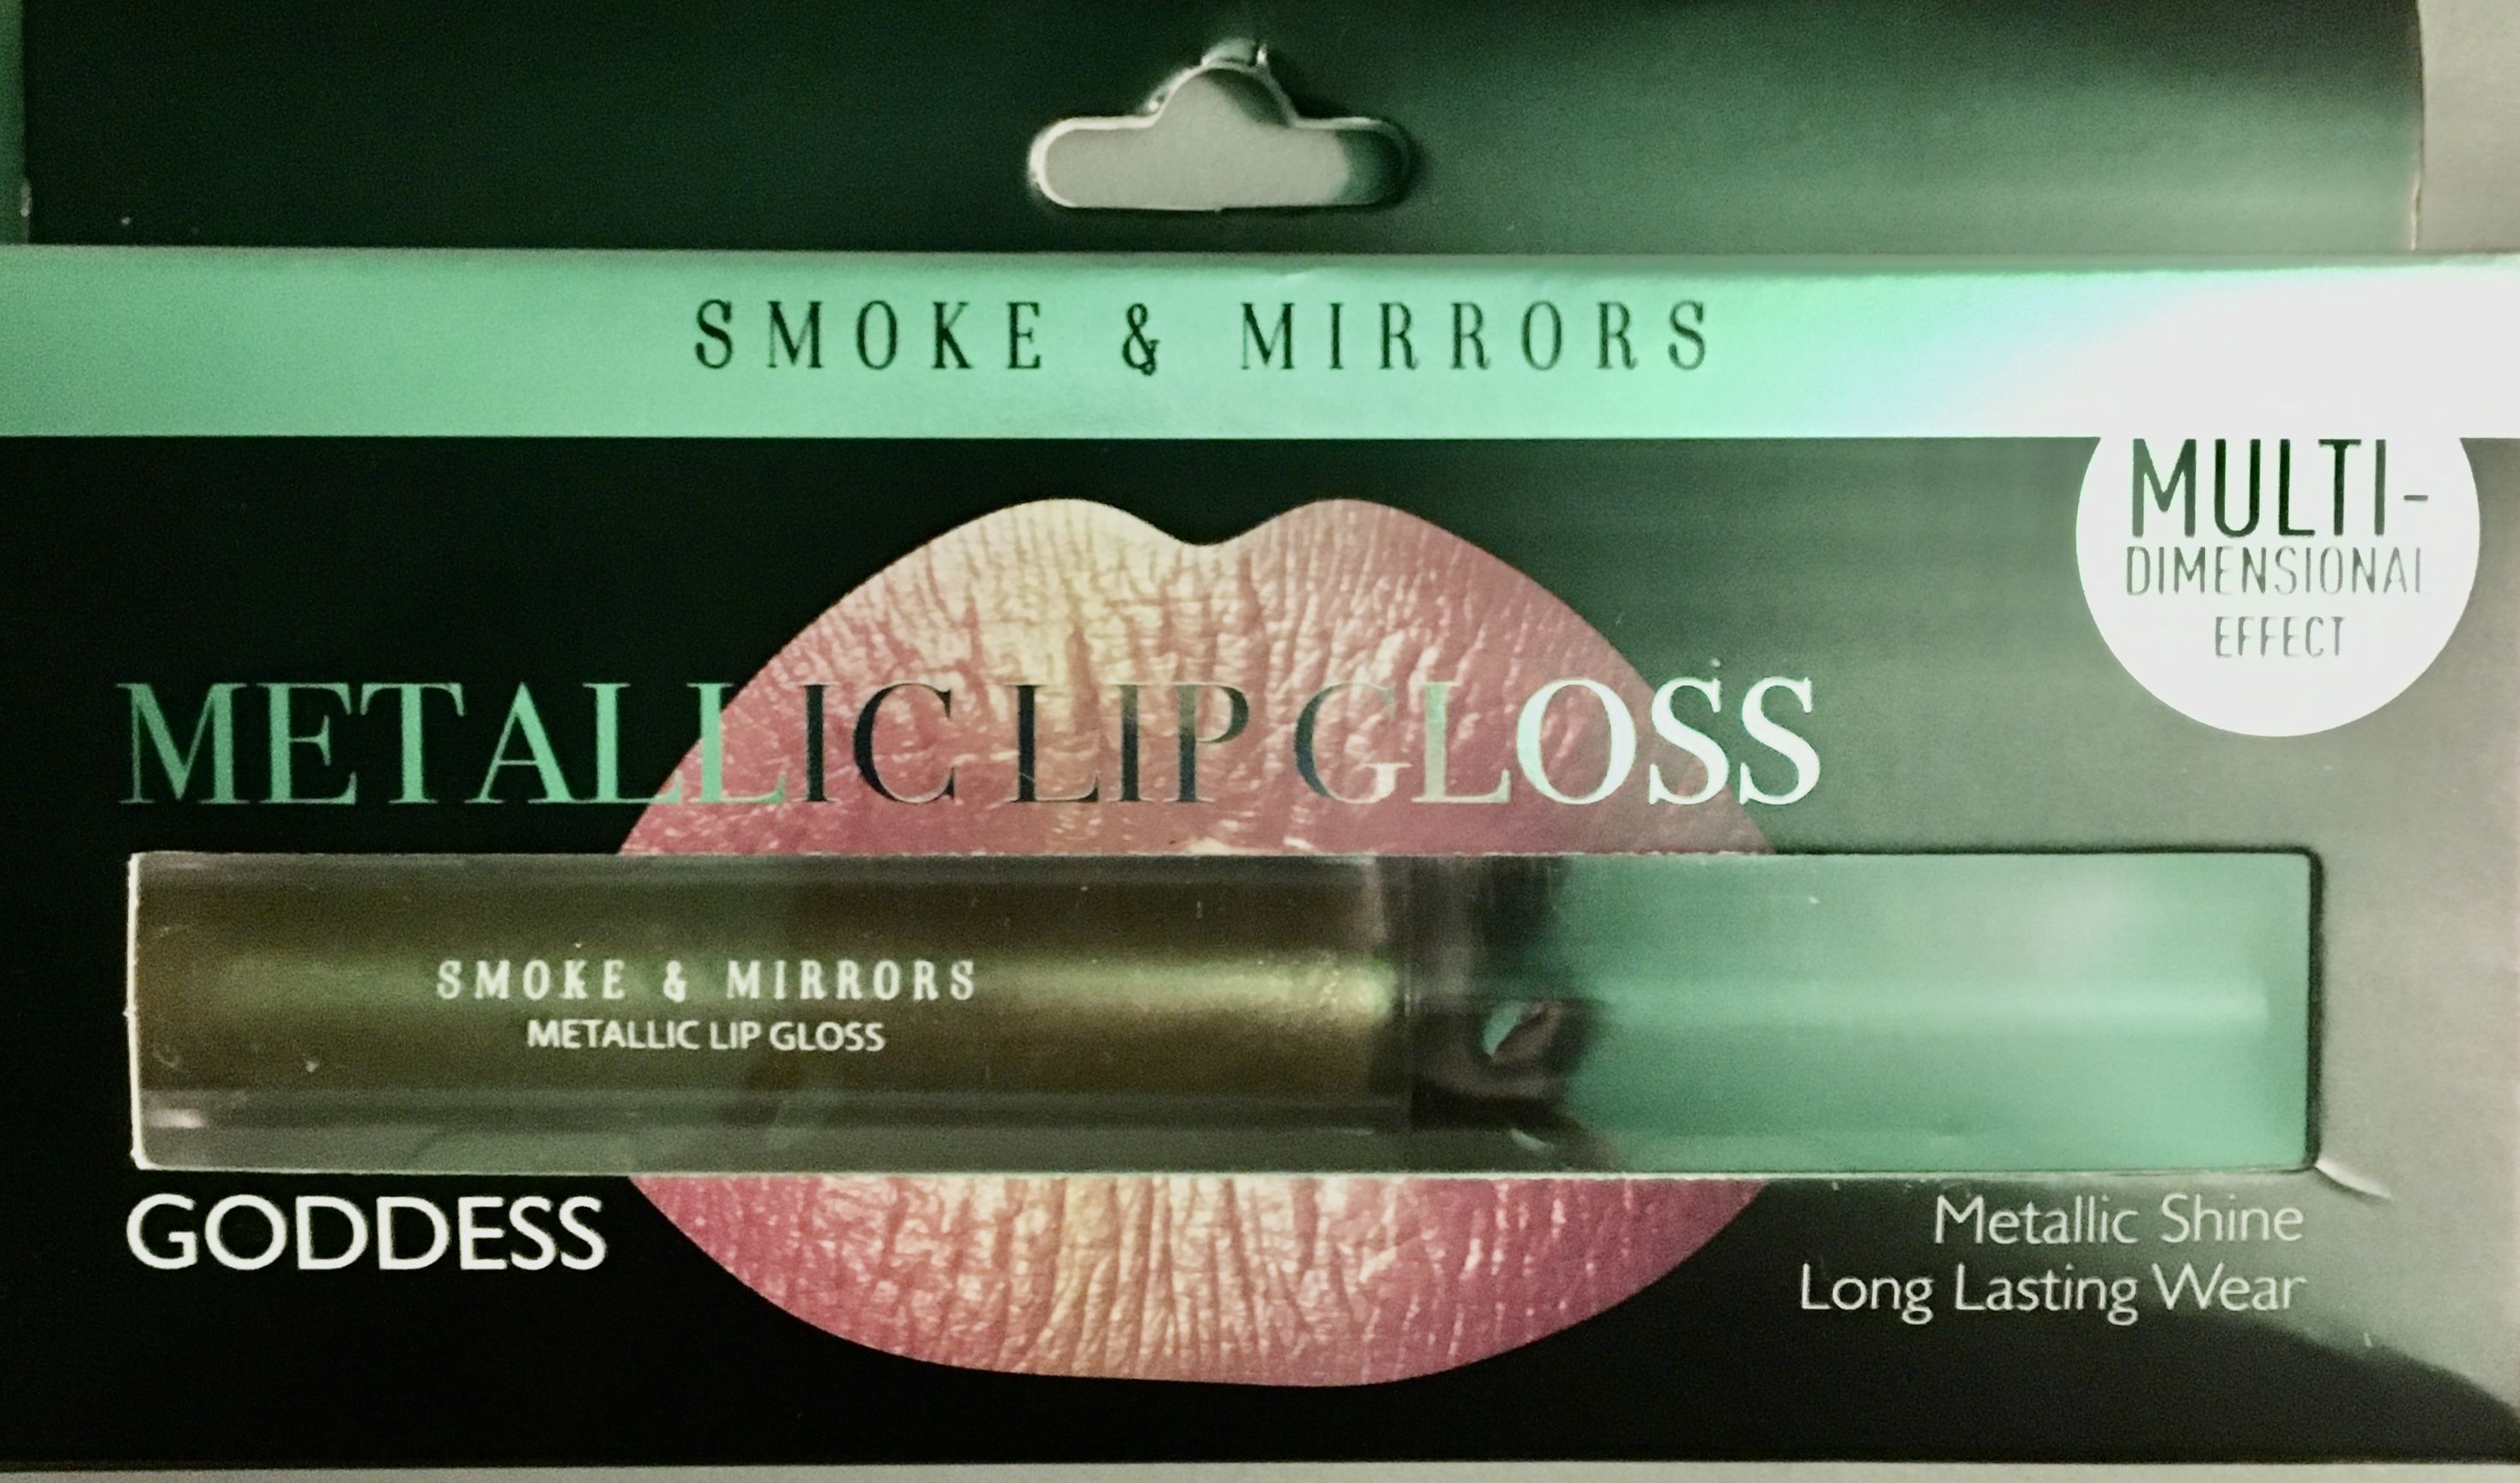 99 cent store Stockton March Lane Metallic lips, Mirror